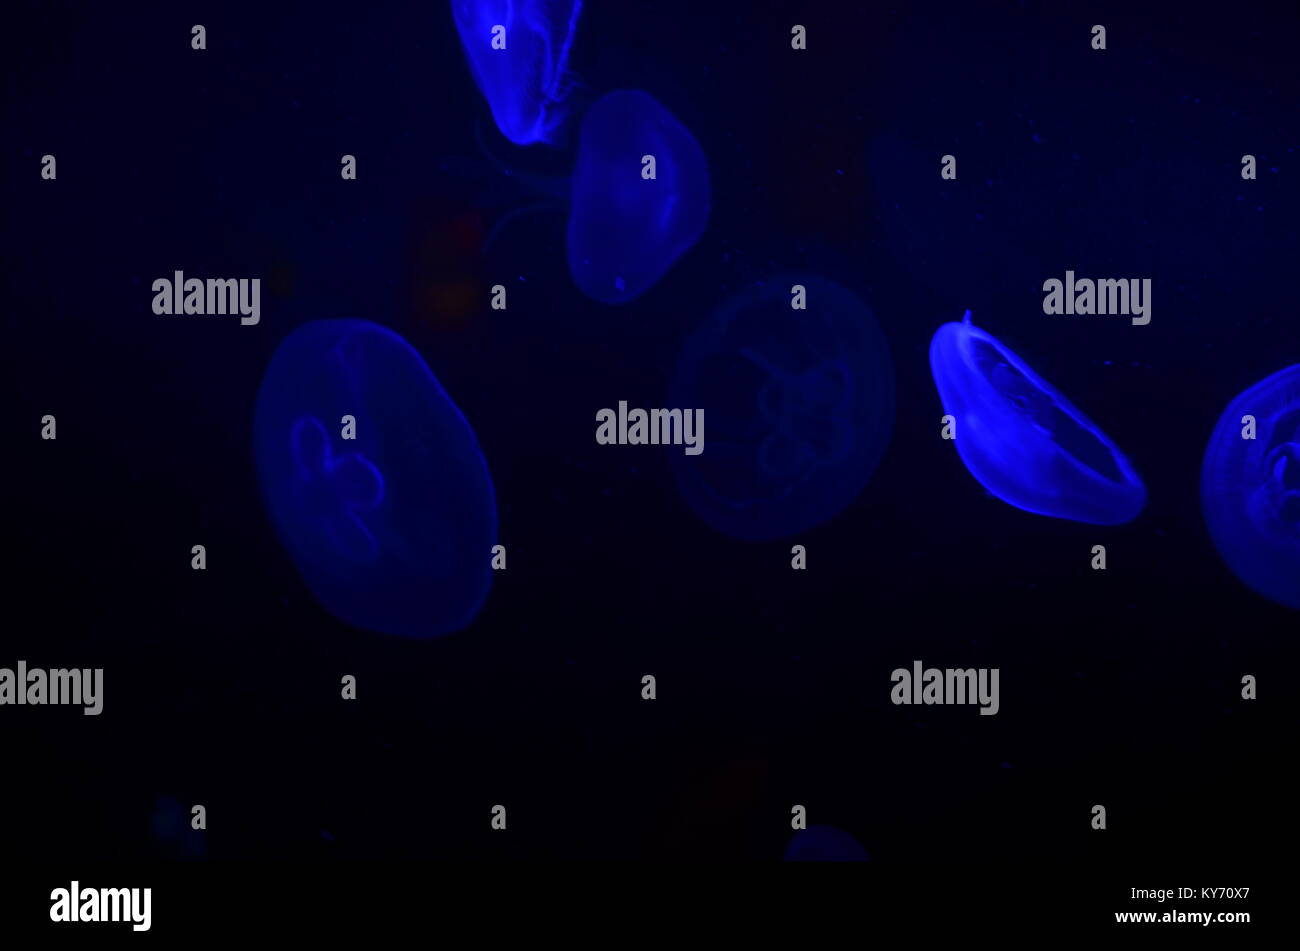 Jellyfish under water looking blue by the light - Stock Image